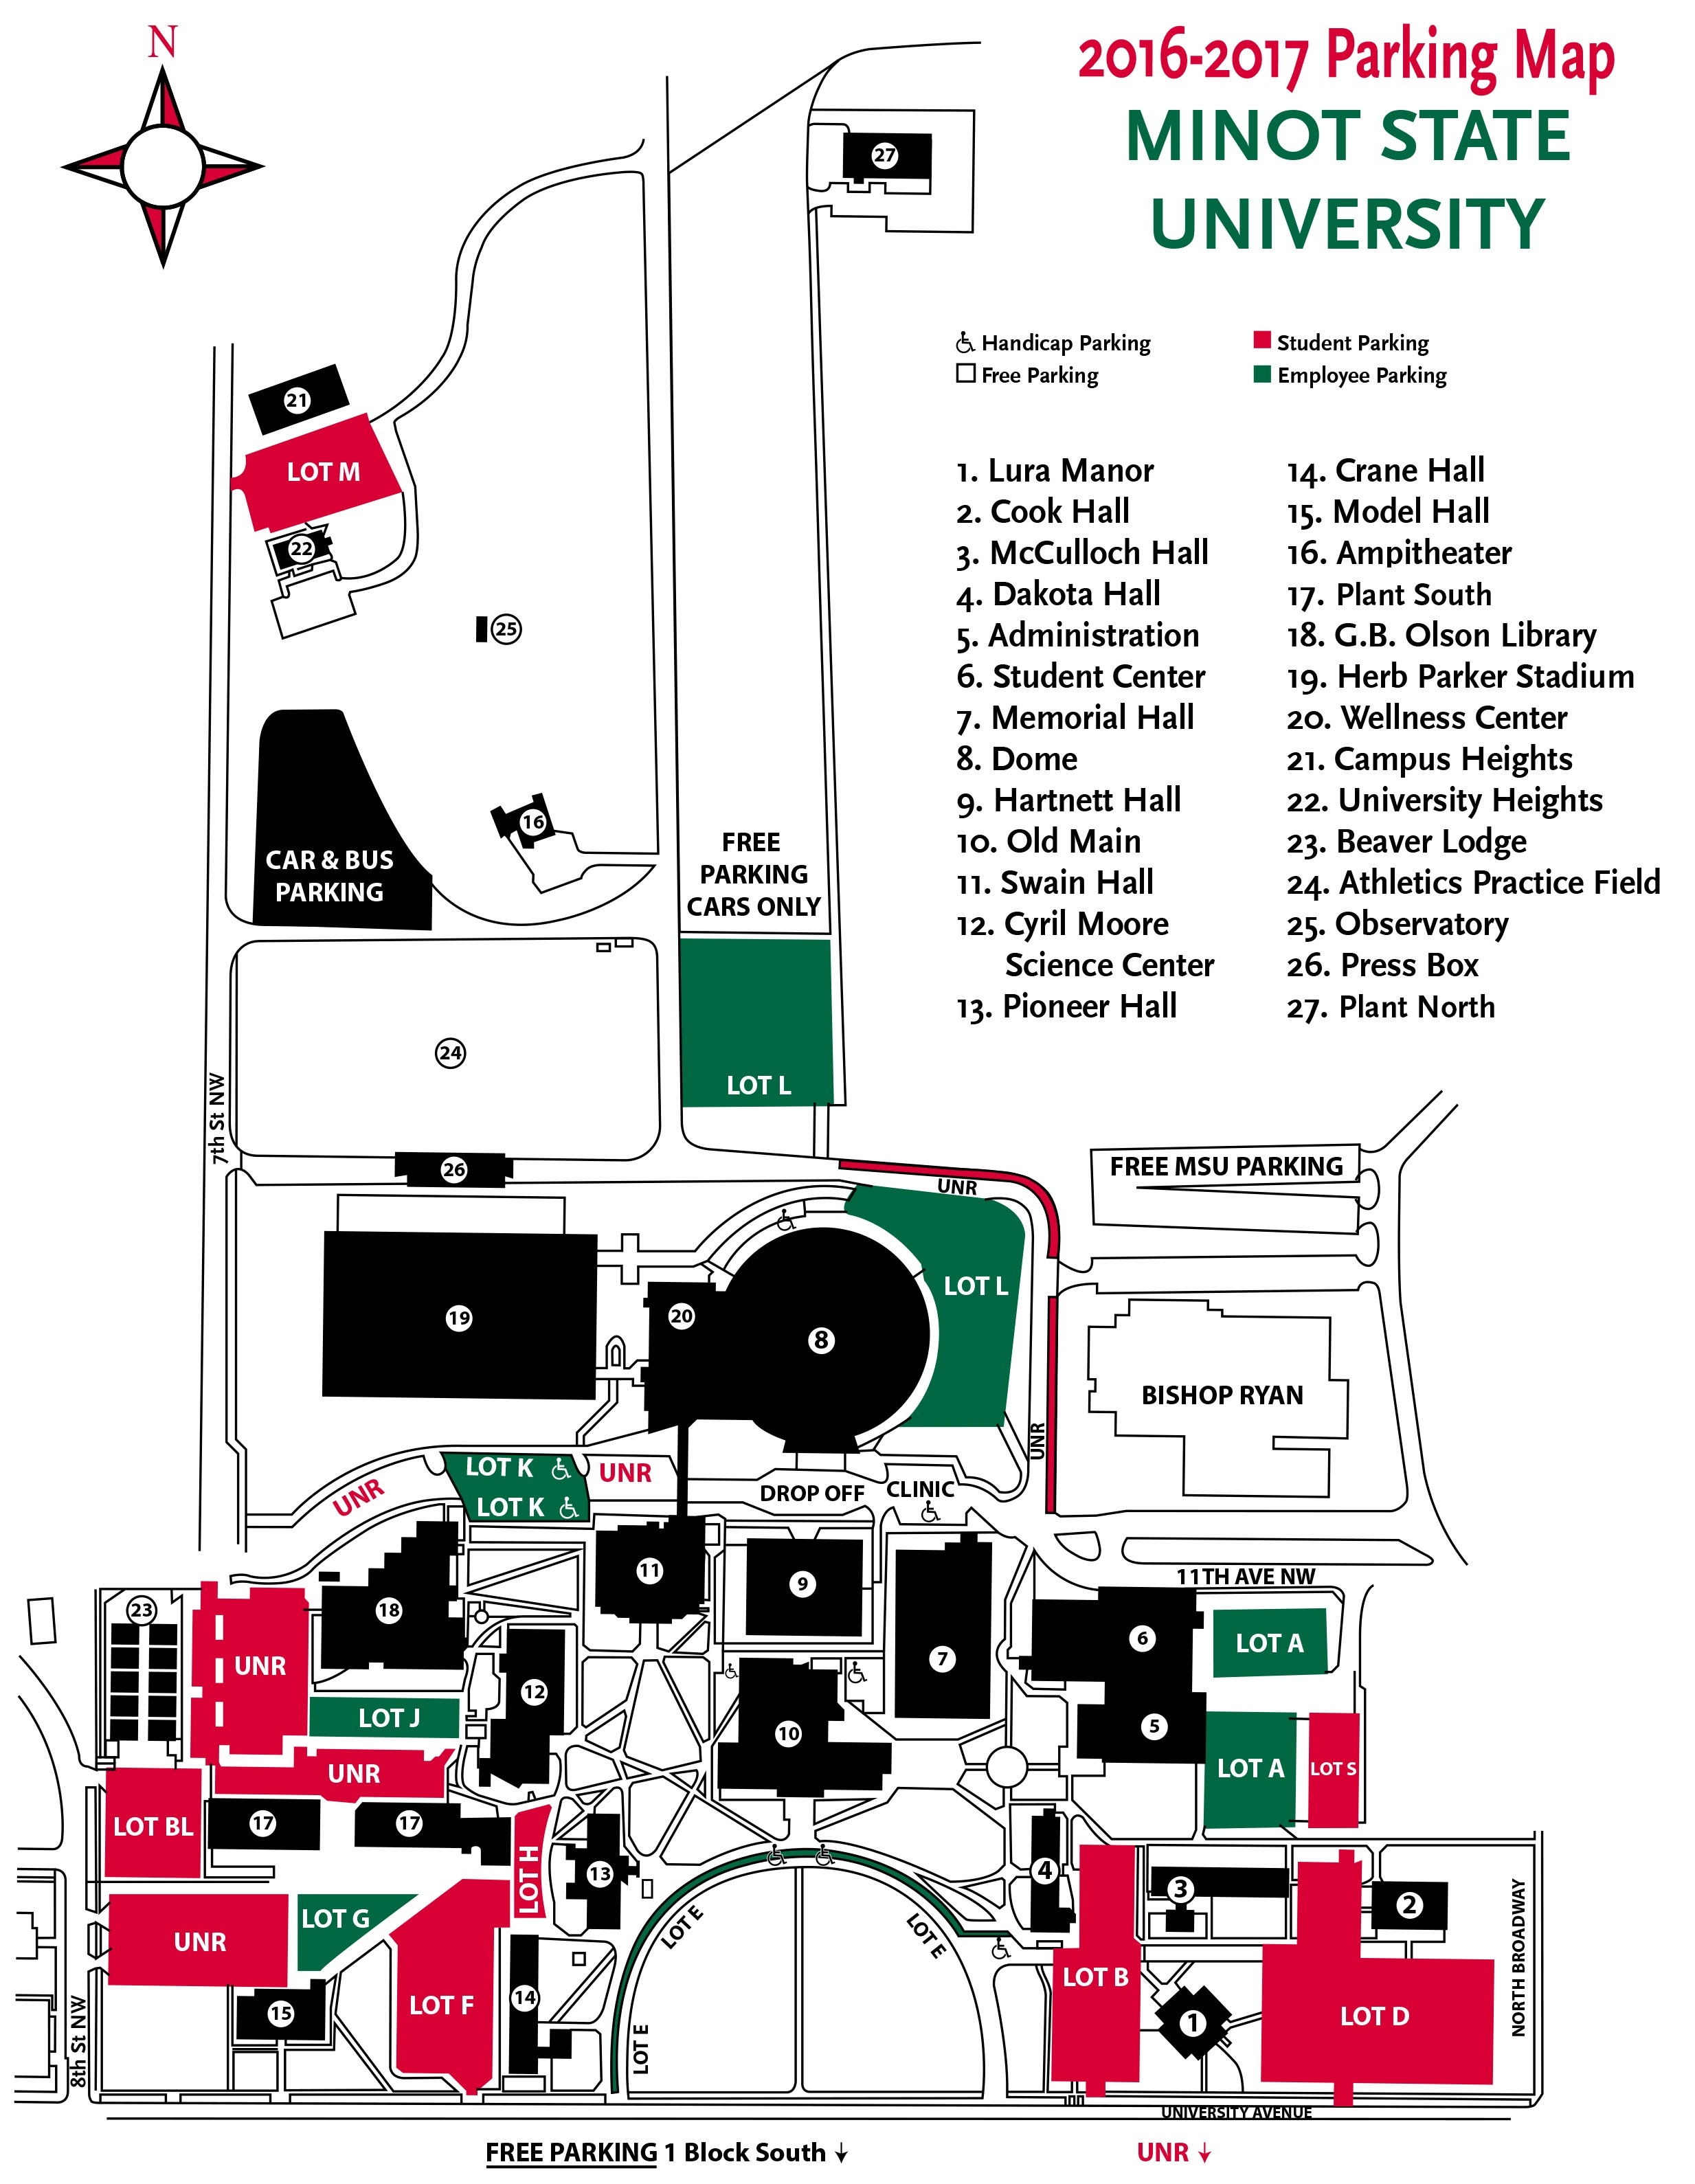 Minot State University Campus Map.Minot State Campus Map Related Keywords Suggestions Minot State